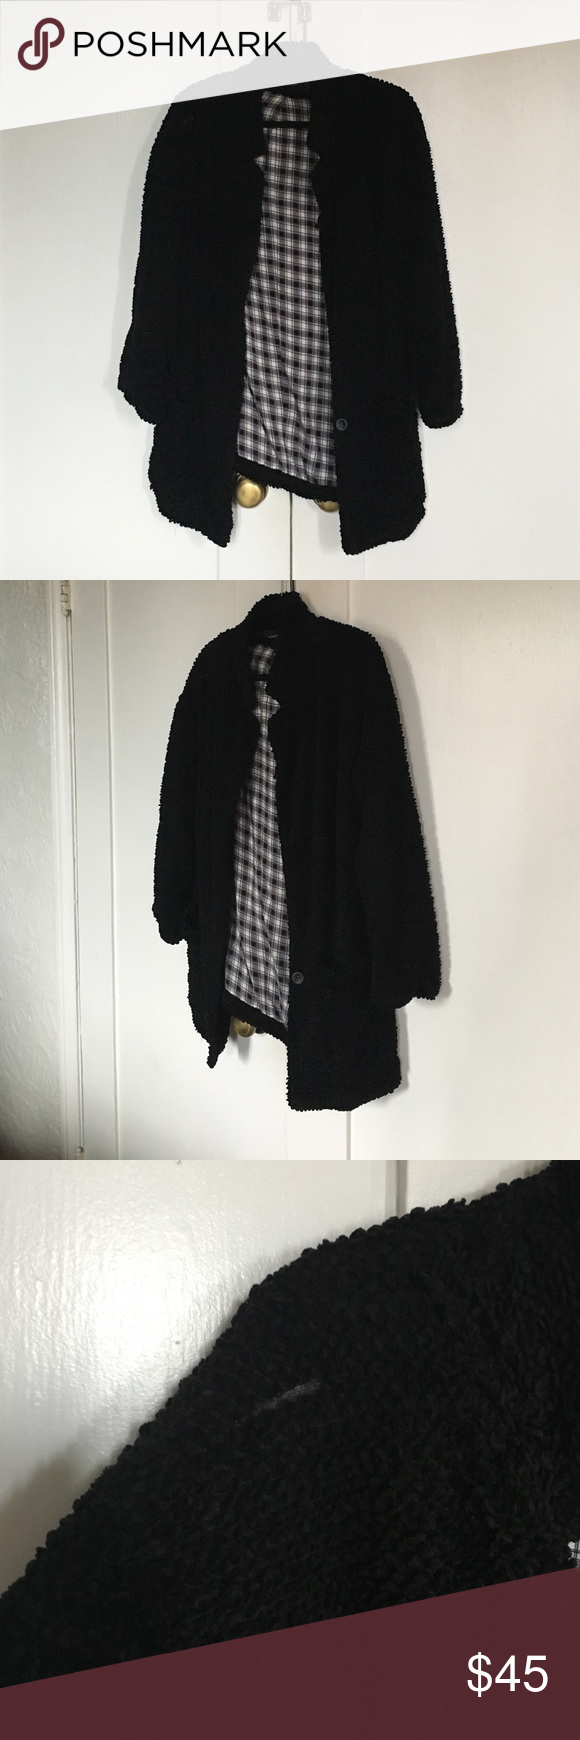 Minkpink black sweater jacket. Cute sweater jacket with plaid lining. Minor wear (pictured on third photo) MINKPINK Jackets & Coats